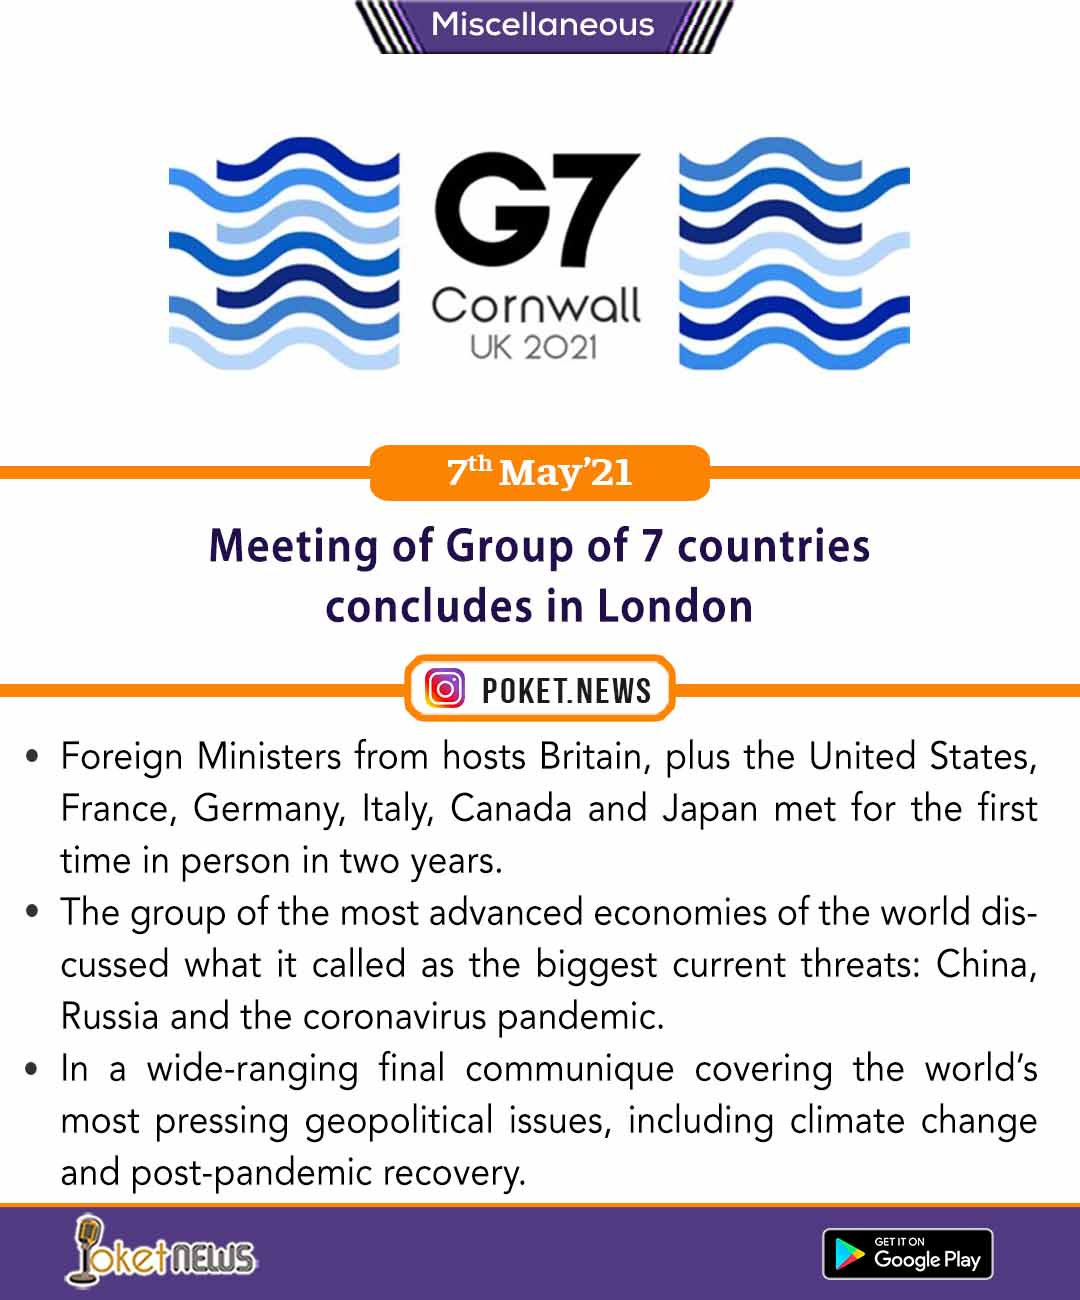 Meeting of Group of 7 countries concludes in London